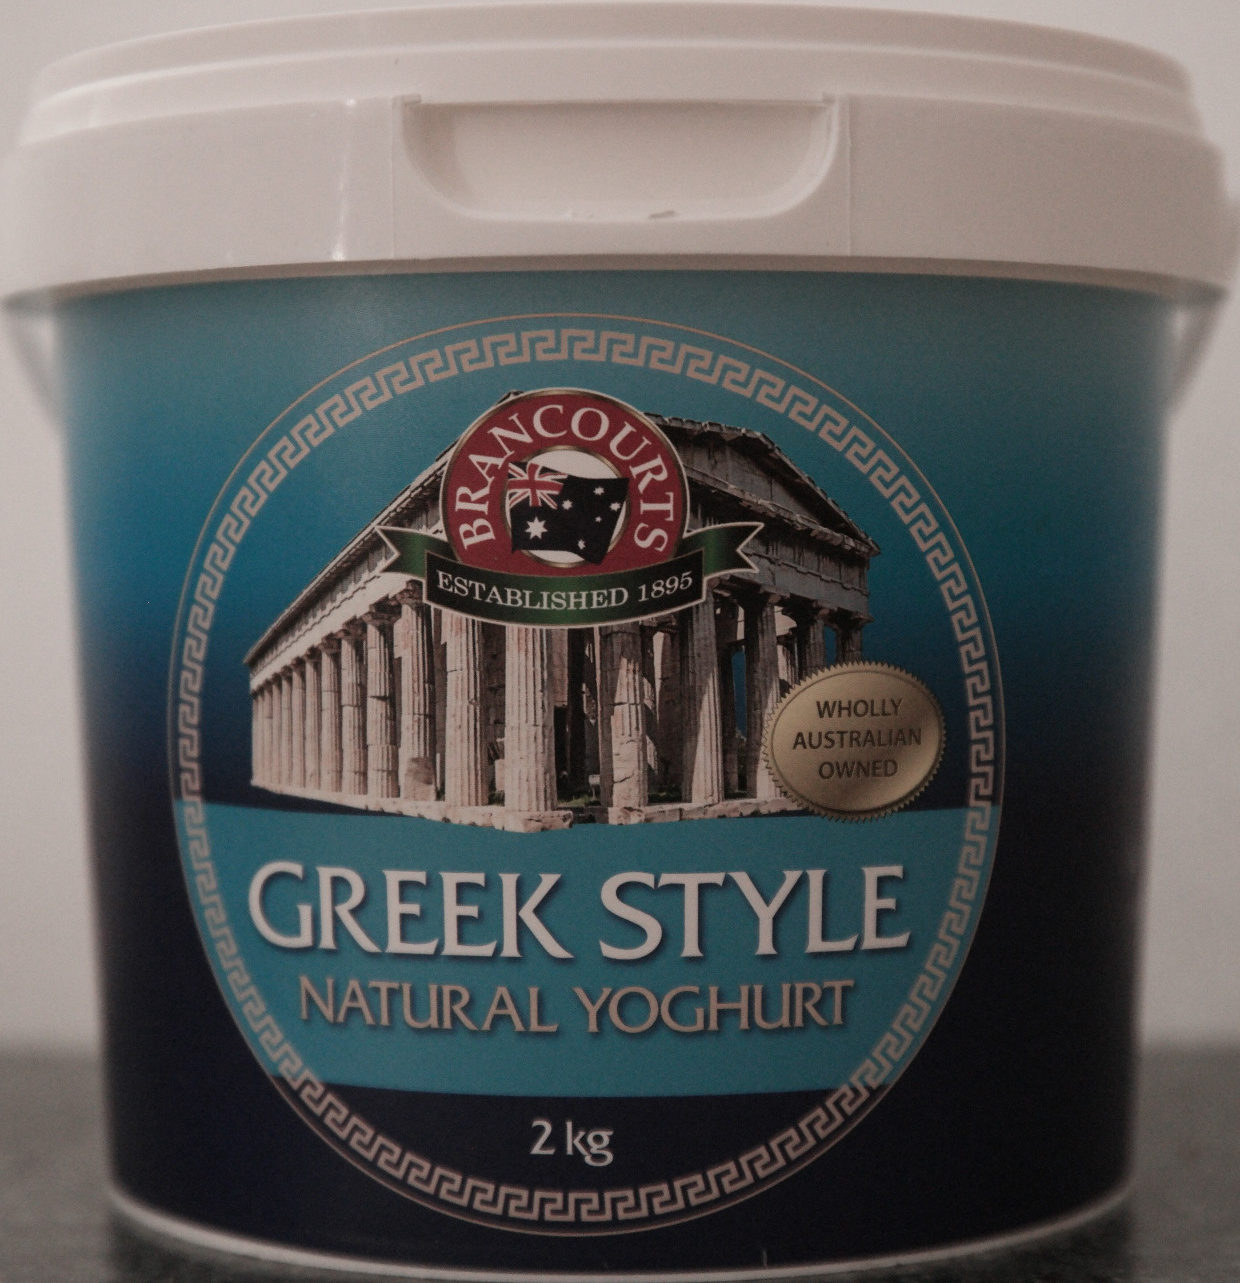 Greek Style Natural Yoghurt - Product - en